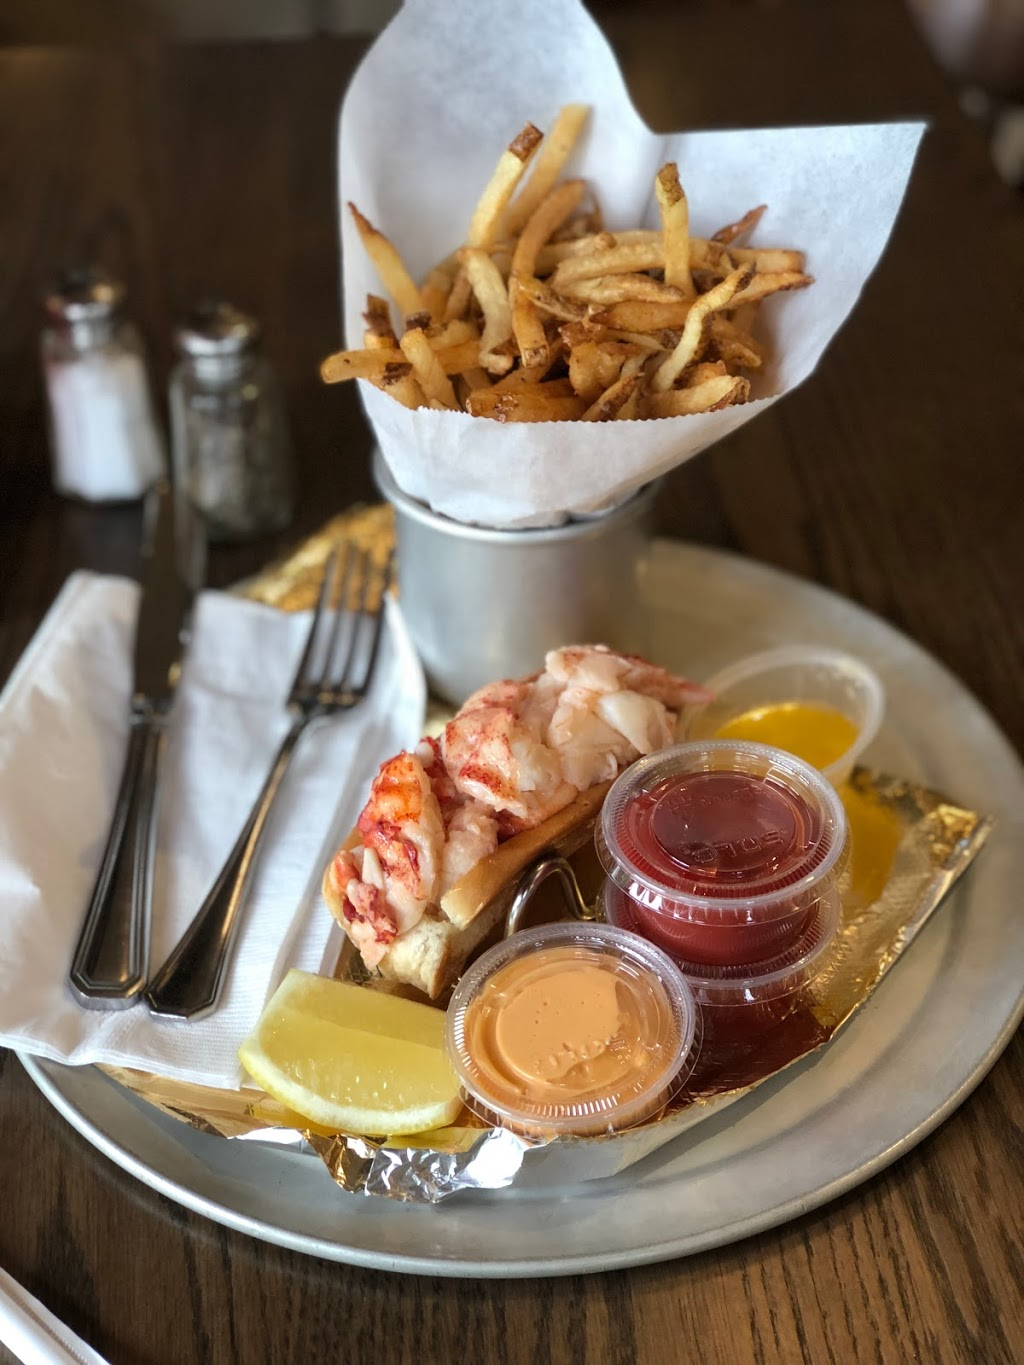 The Rex Burger & Lobster - restaurant  | Photo 8 of 10 | Address: 524 Jericho Turnpike, Mineola, NY 11501, USA | Phone: (516) 739-2747